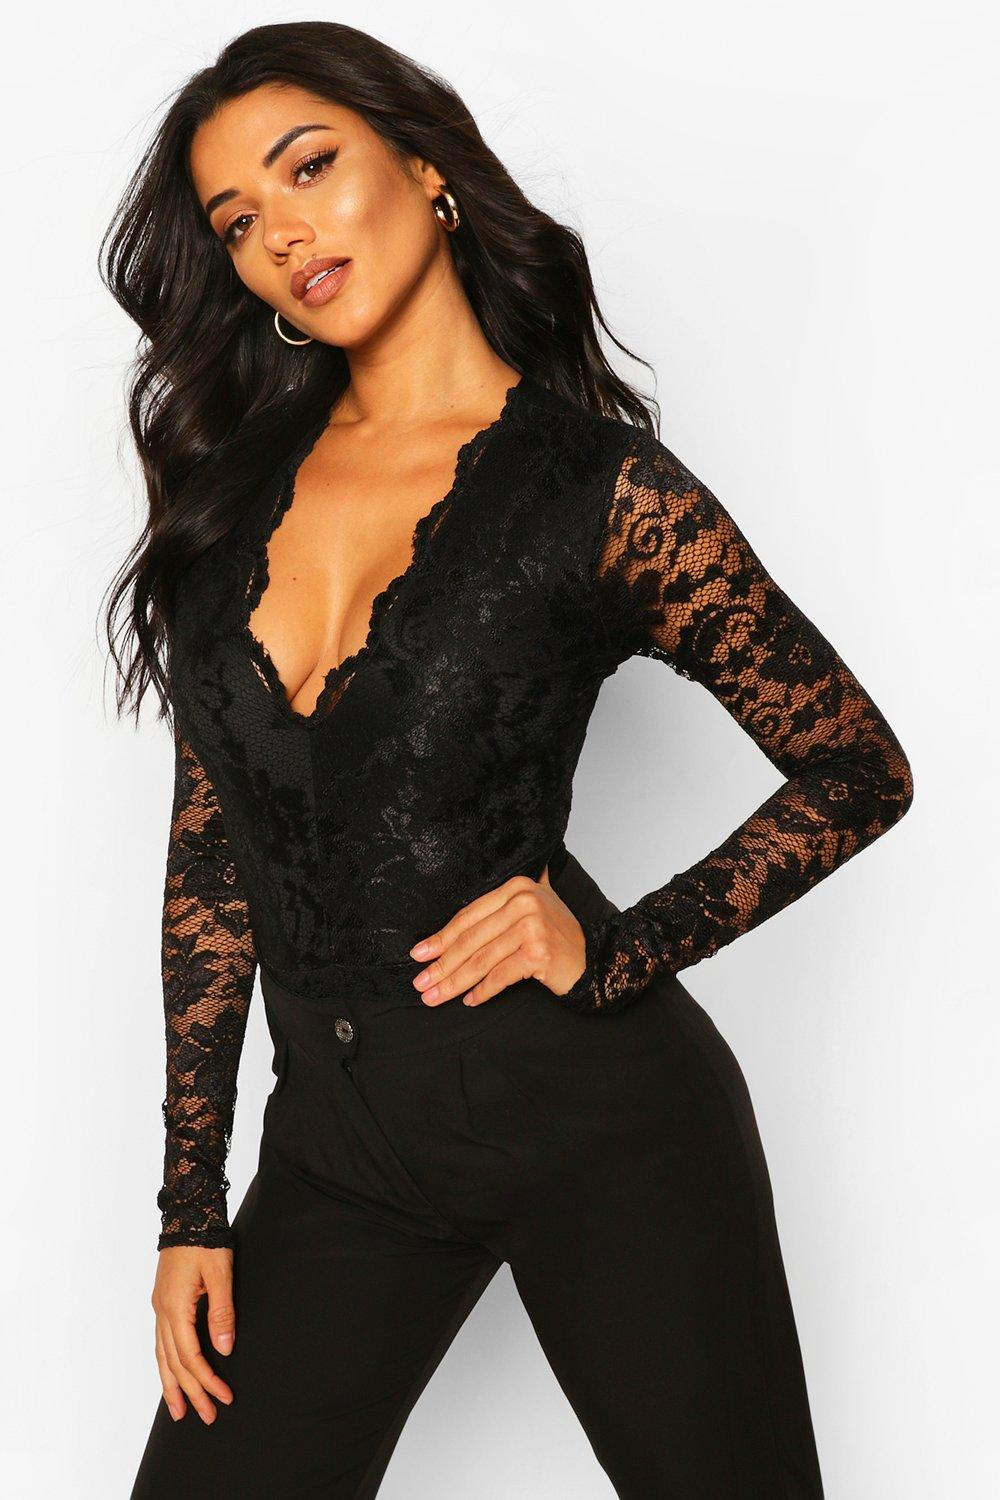 Bodysuits for women in all styles. Shop bodysuits for club & going out, work bodysuits, leotards, and casual everyday style.